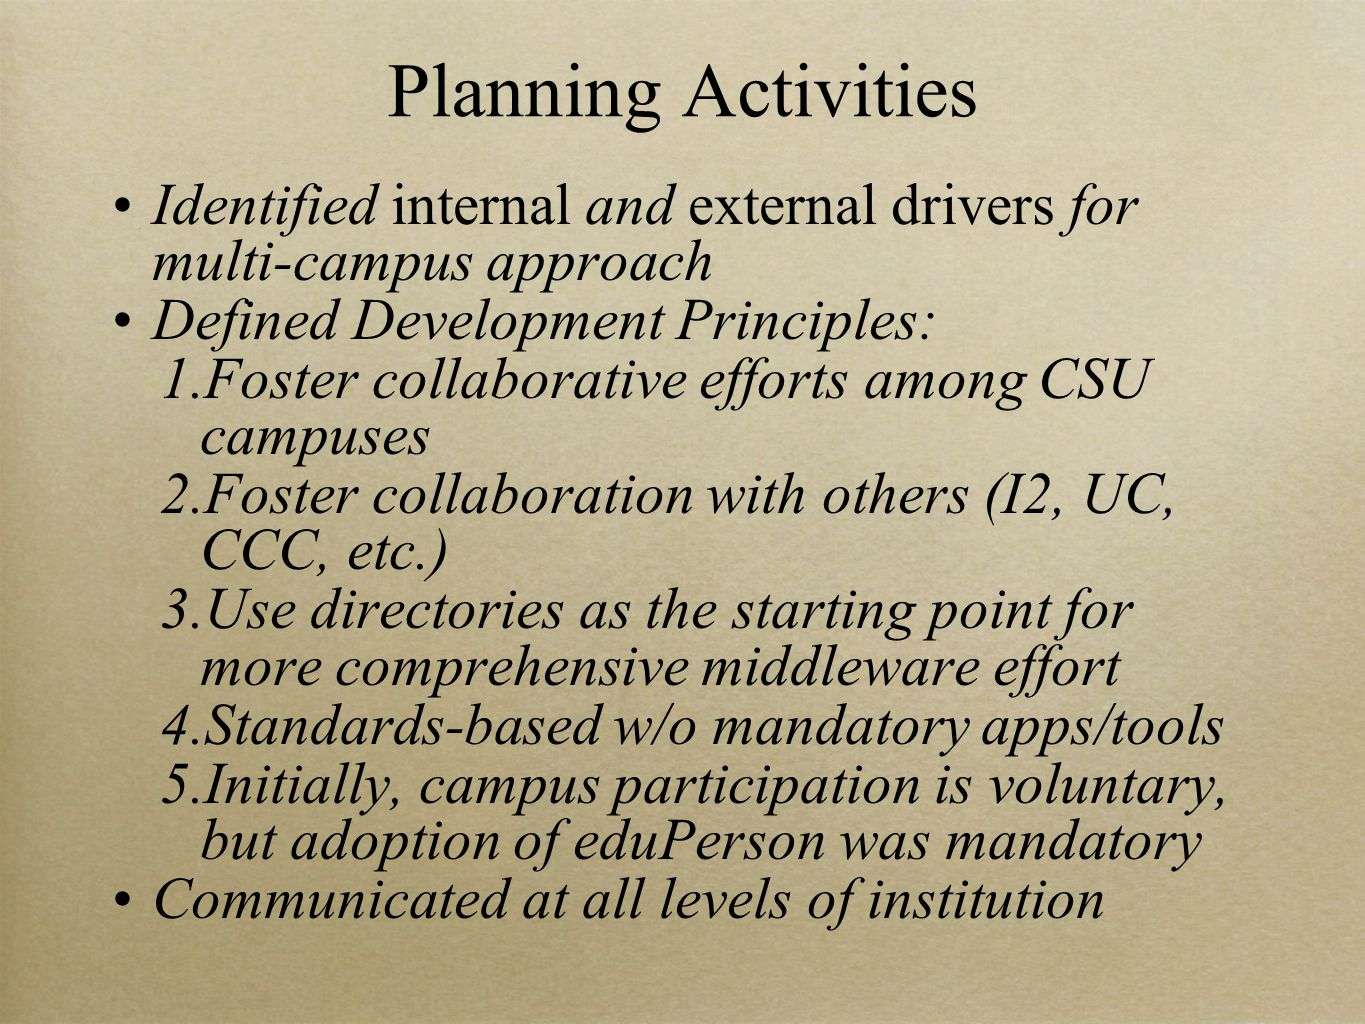 Planning Activities Identified internal and external drivers for multi-campus approach Defined Development Principles: 1.Foster collaborative efforts among CSU campuses 2.Foster collaboration with others (I2, UC, CCC, etc.) 3.Use directories as the starting point for more comprehensive middleware effort 4.Standards-based w/o mandatory apps/tools 5.Initially, campus participation is voluntary, but adoption of eduPerson was mandatory Communicated at all levels of institution